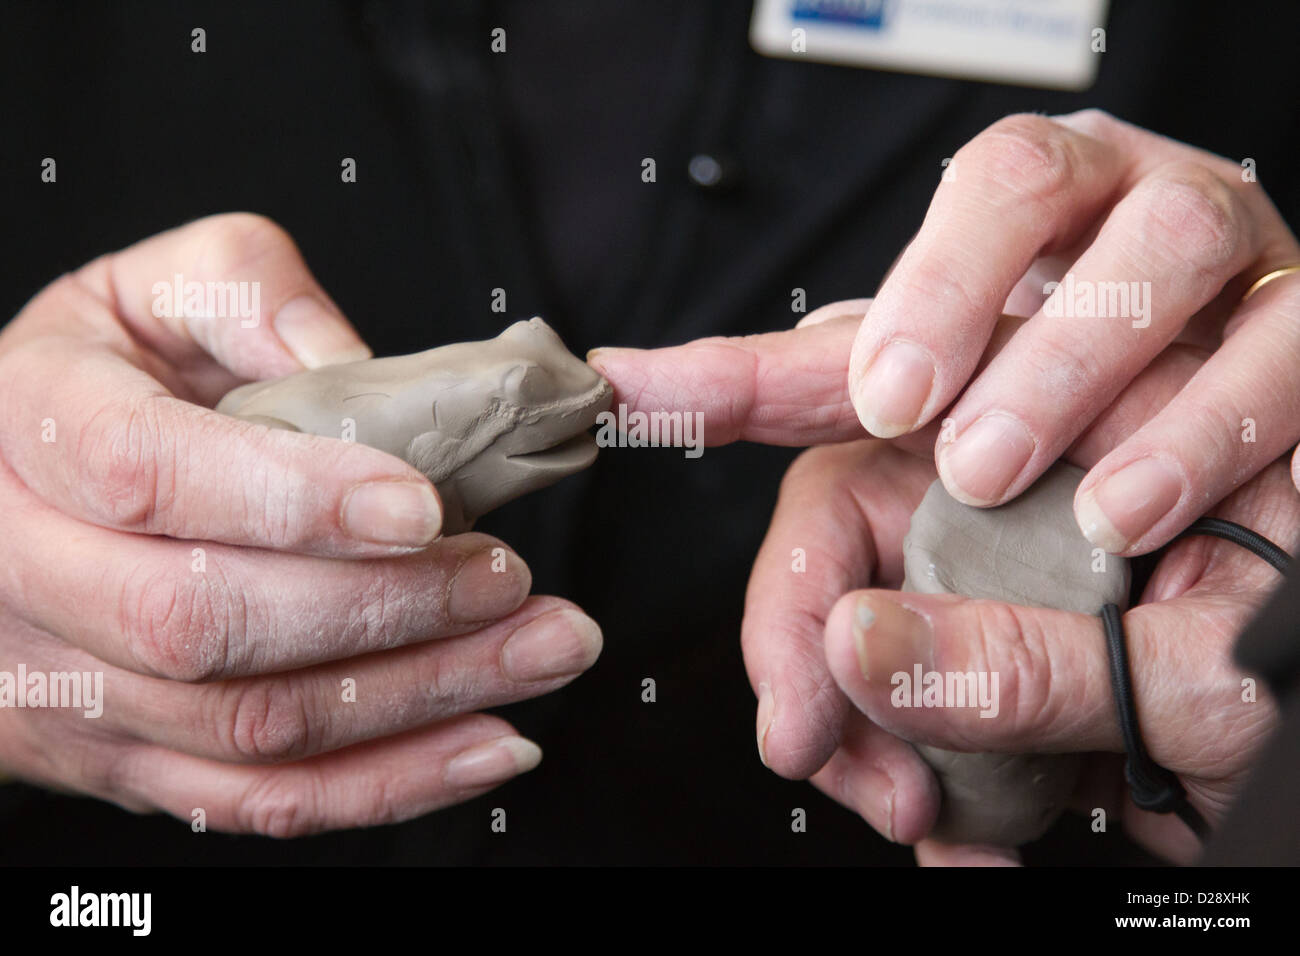 Visually impaired people with carers on outing to Denby Pottery. Touching clay frog. - Stock Image